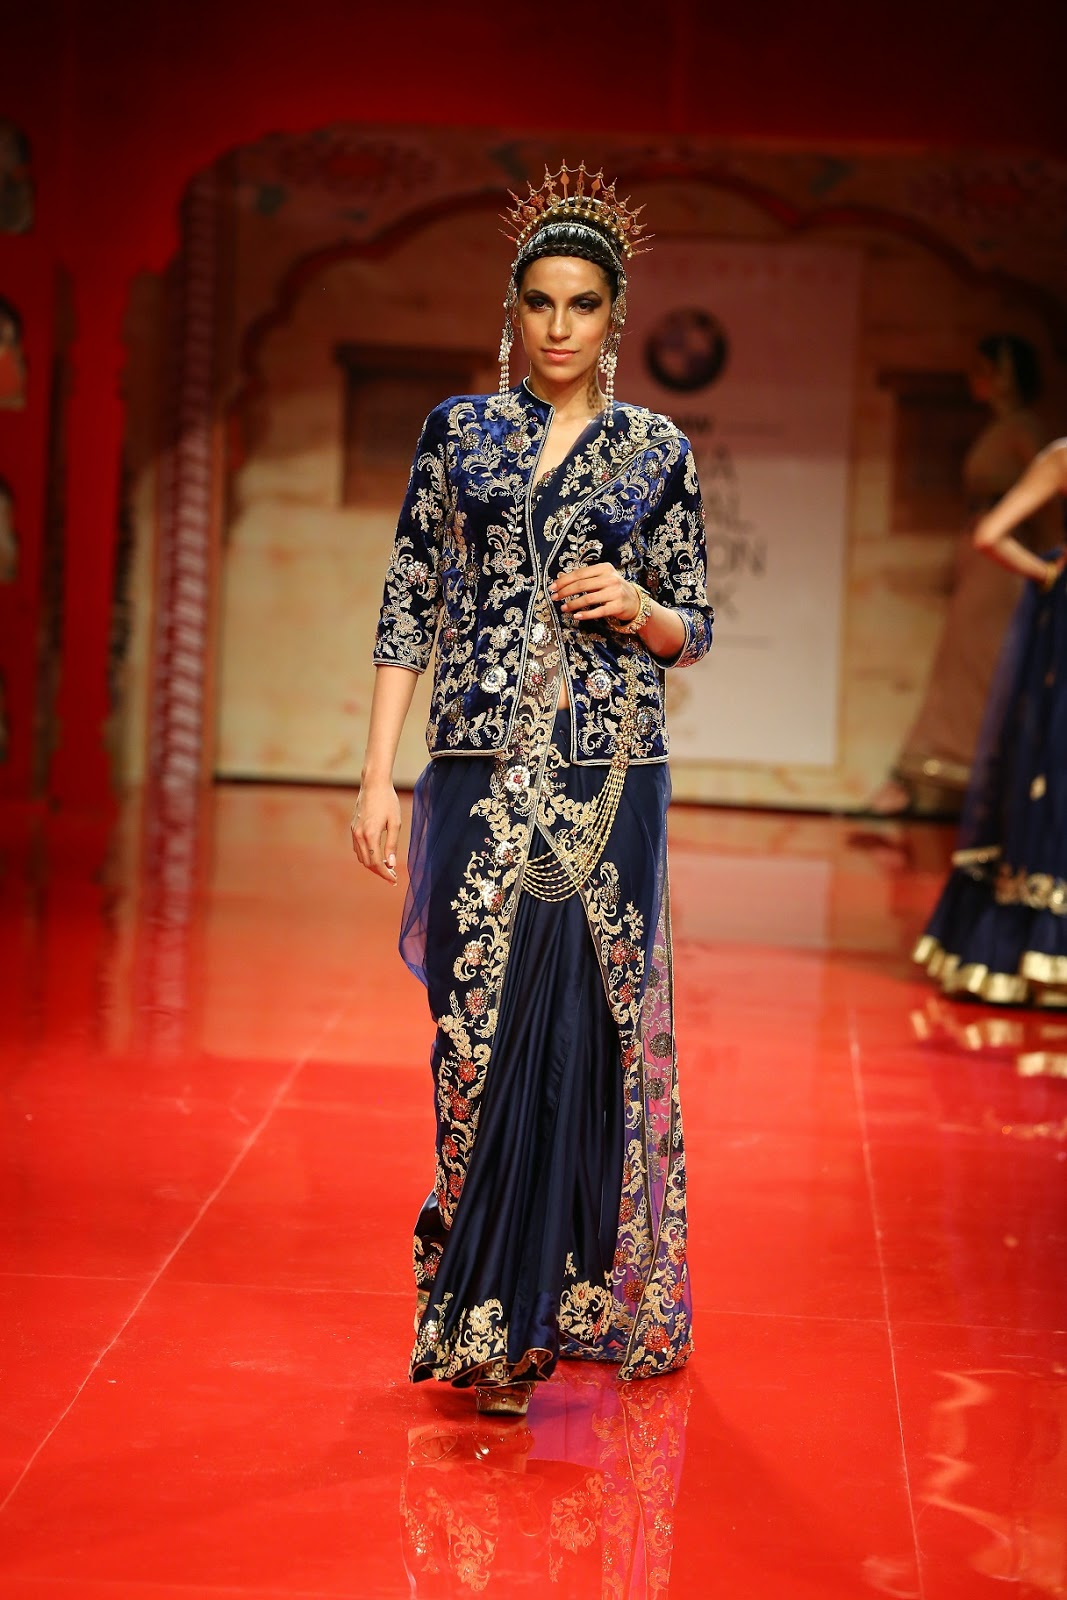 India Bridal Fashion Week 2014 Rajasthan By Suneet Varma Stylish By Nature By Shalini Chopra